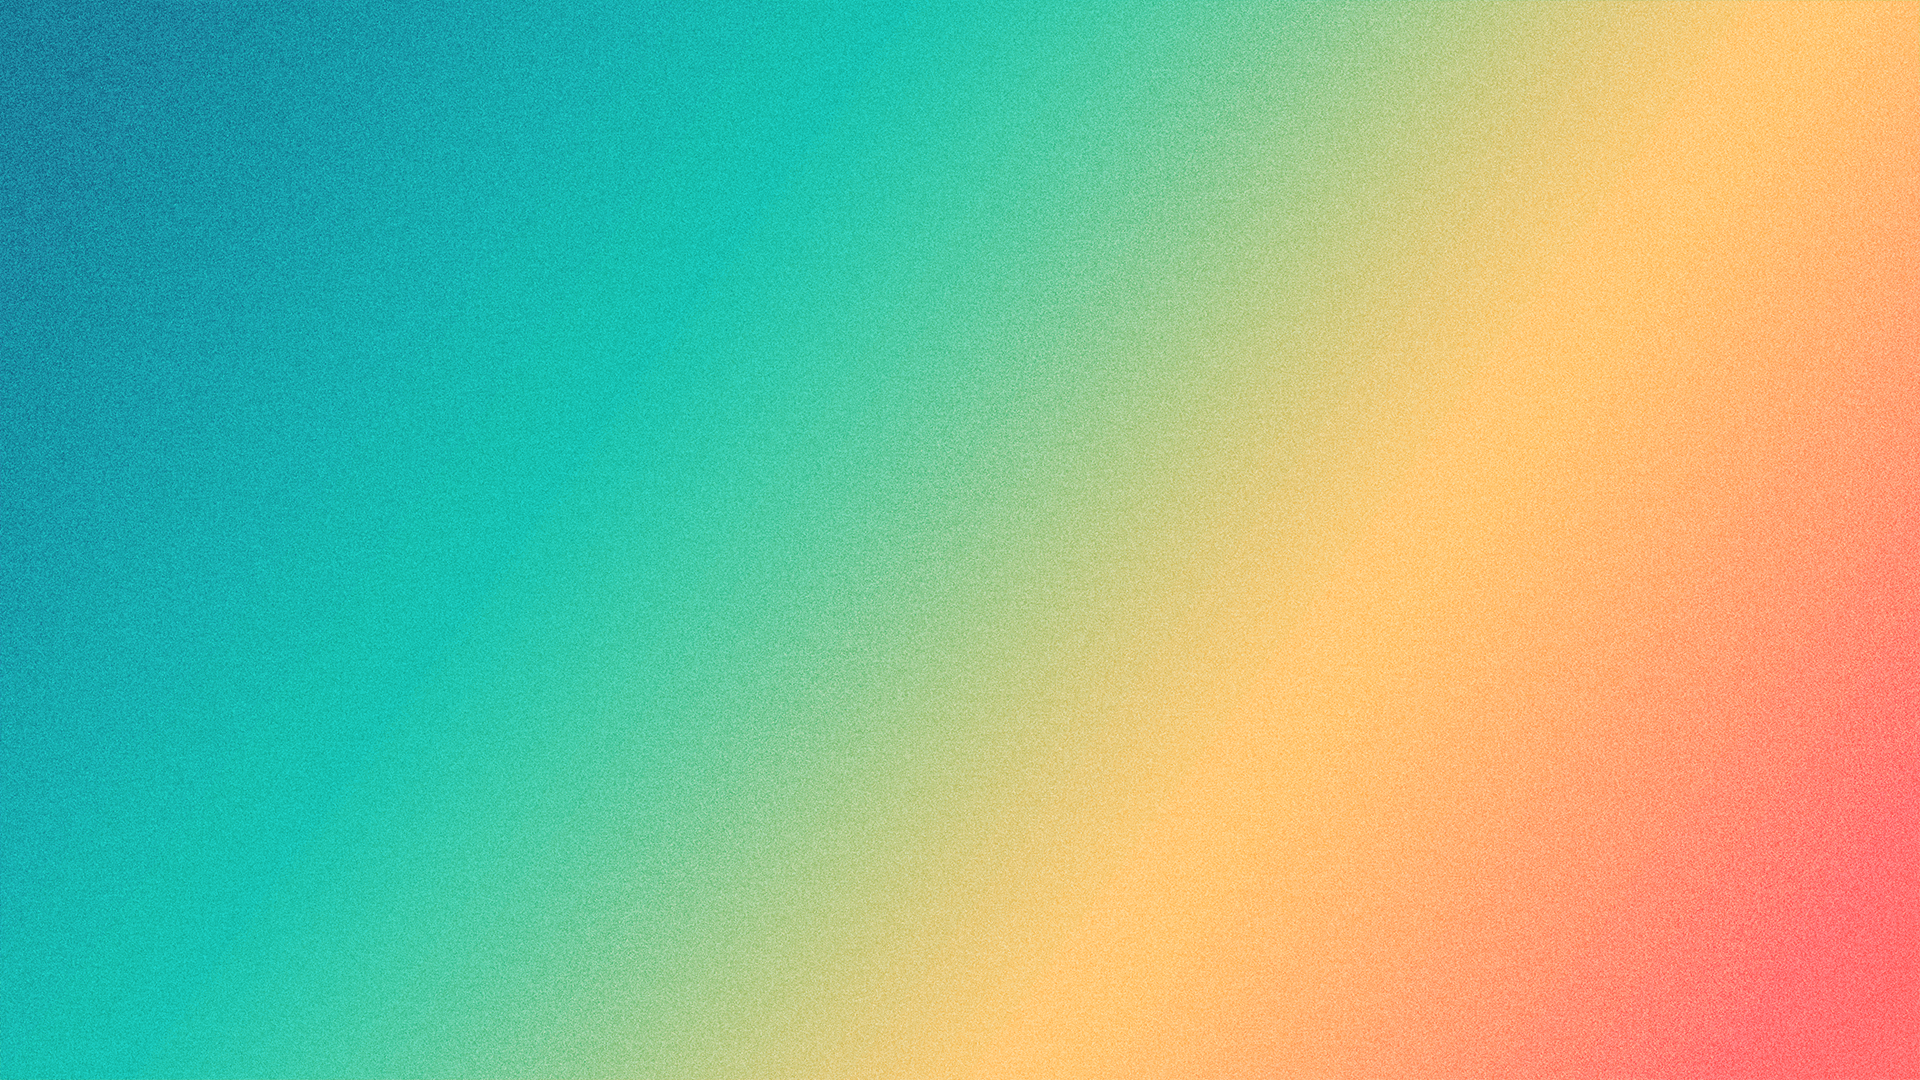 Decorative image: the RUA primary color expression for the RUA logo marks is a gradient using Soft Red, Sun Gold, New Green, and RUA Blue. In this image the color progression begins with the blue on the left side of the screen.